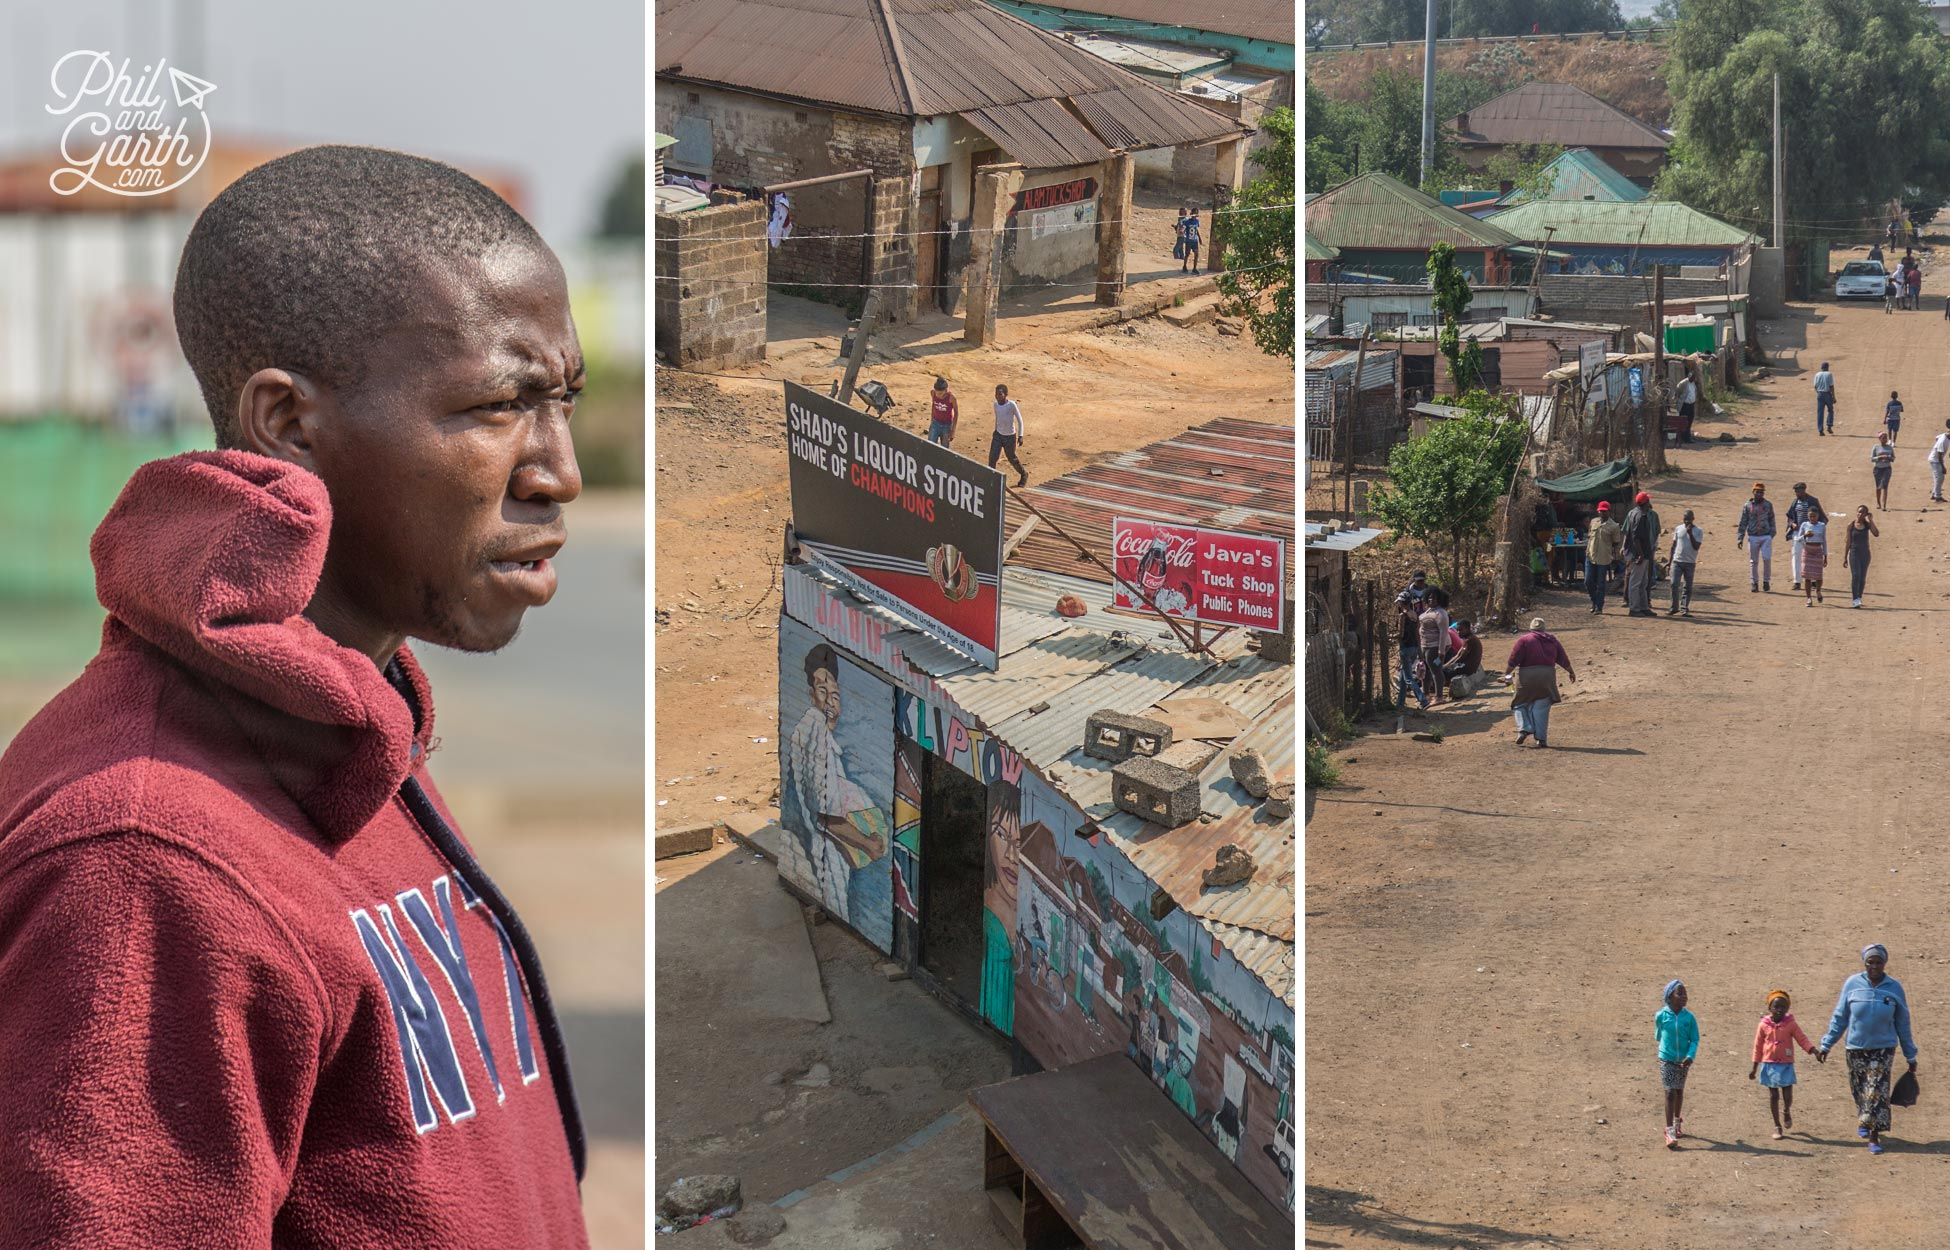 Our guide explains what its like to live in a township